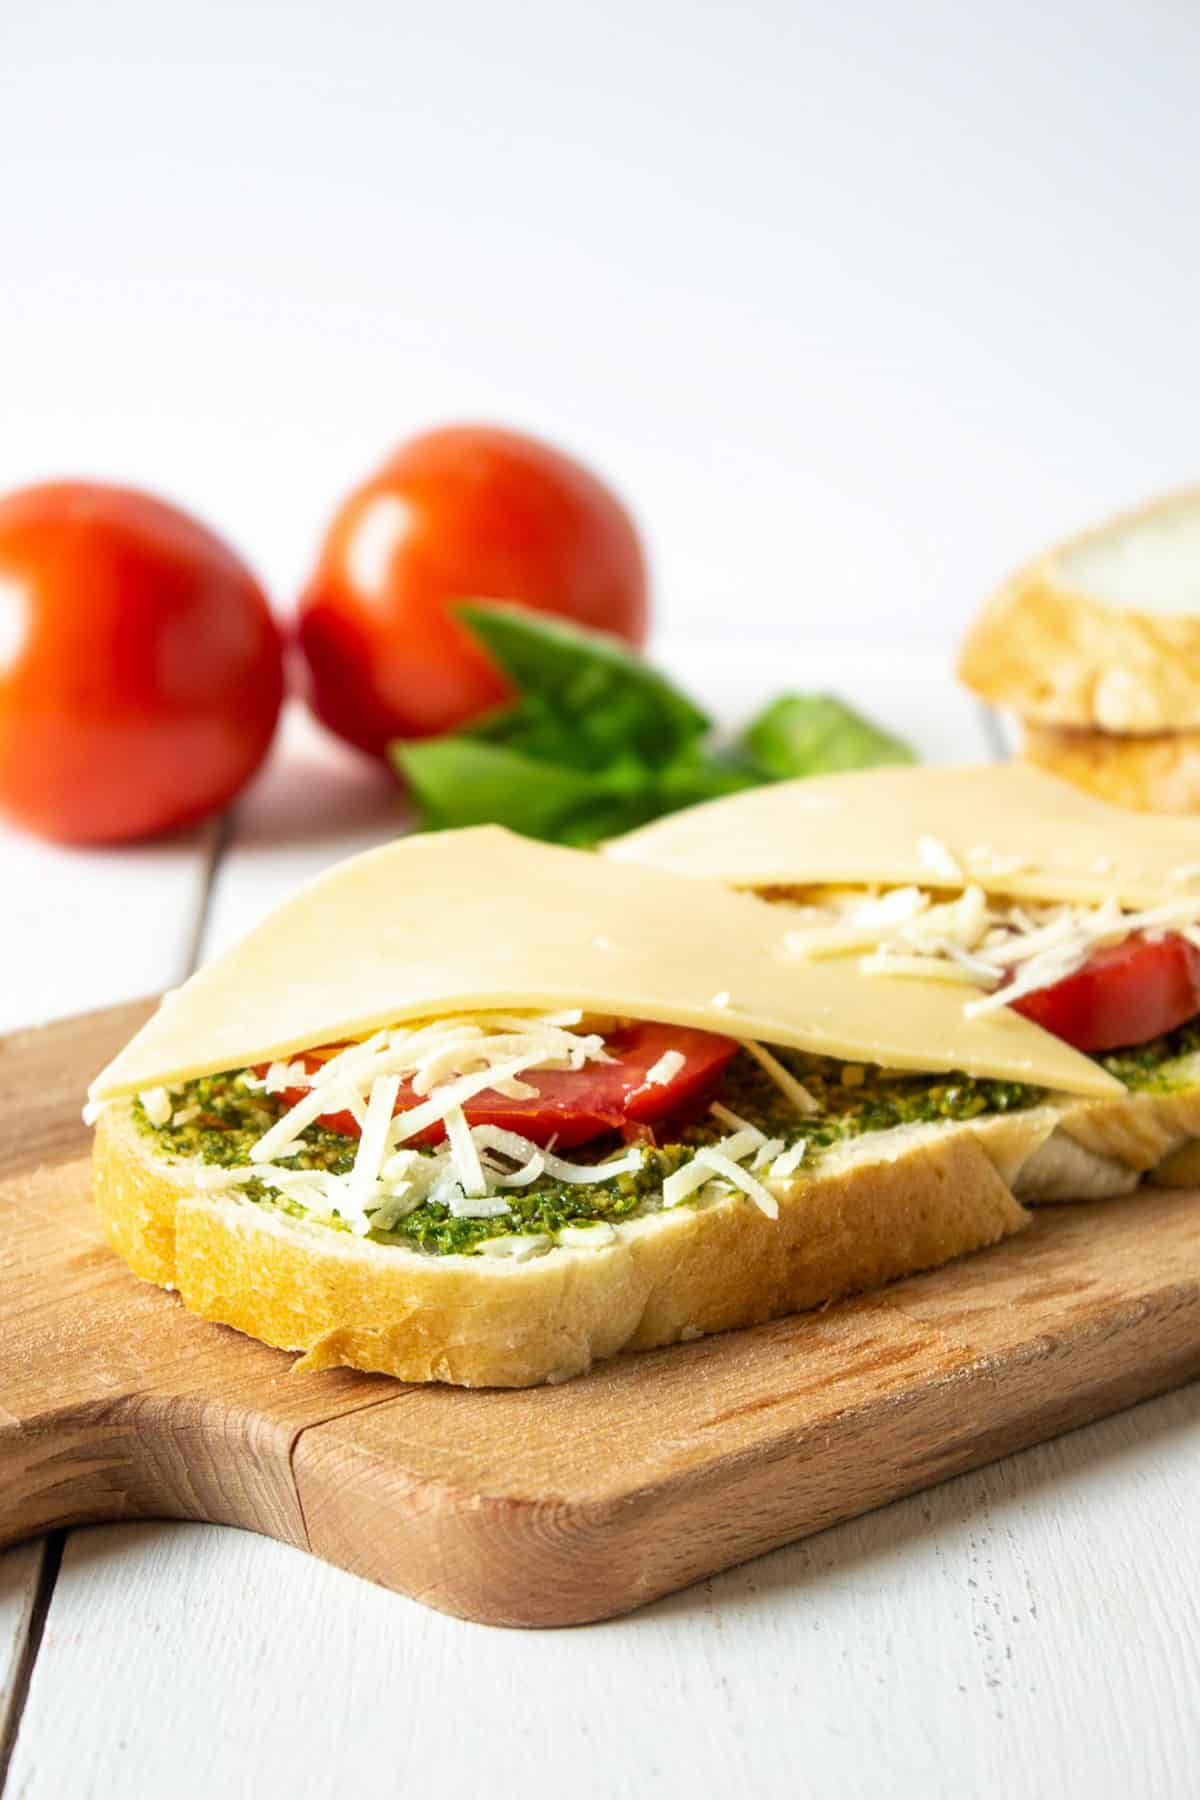 An open faced sandwich with cheese, tomatoes and pesto.